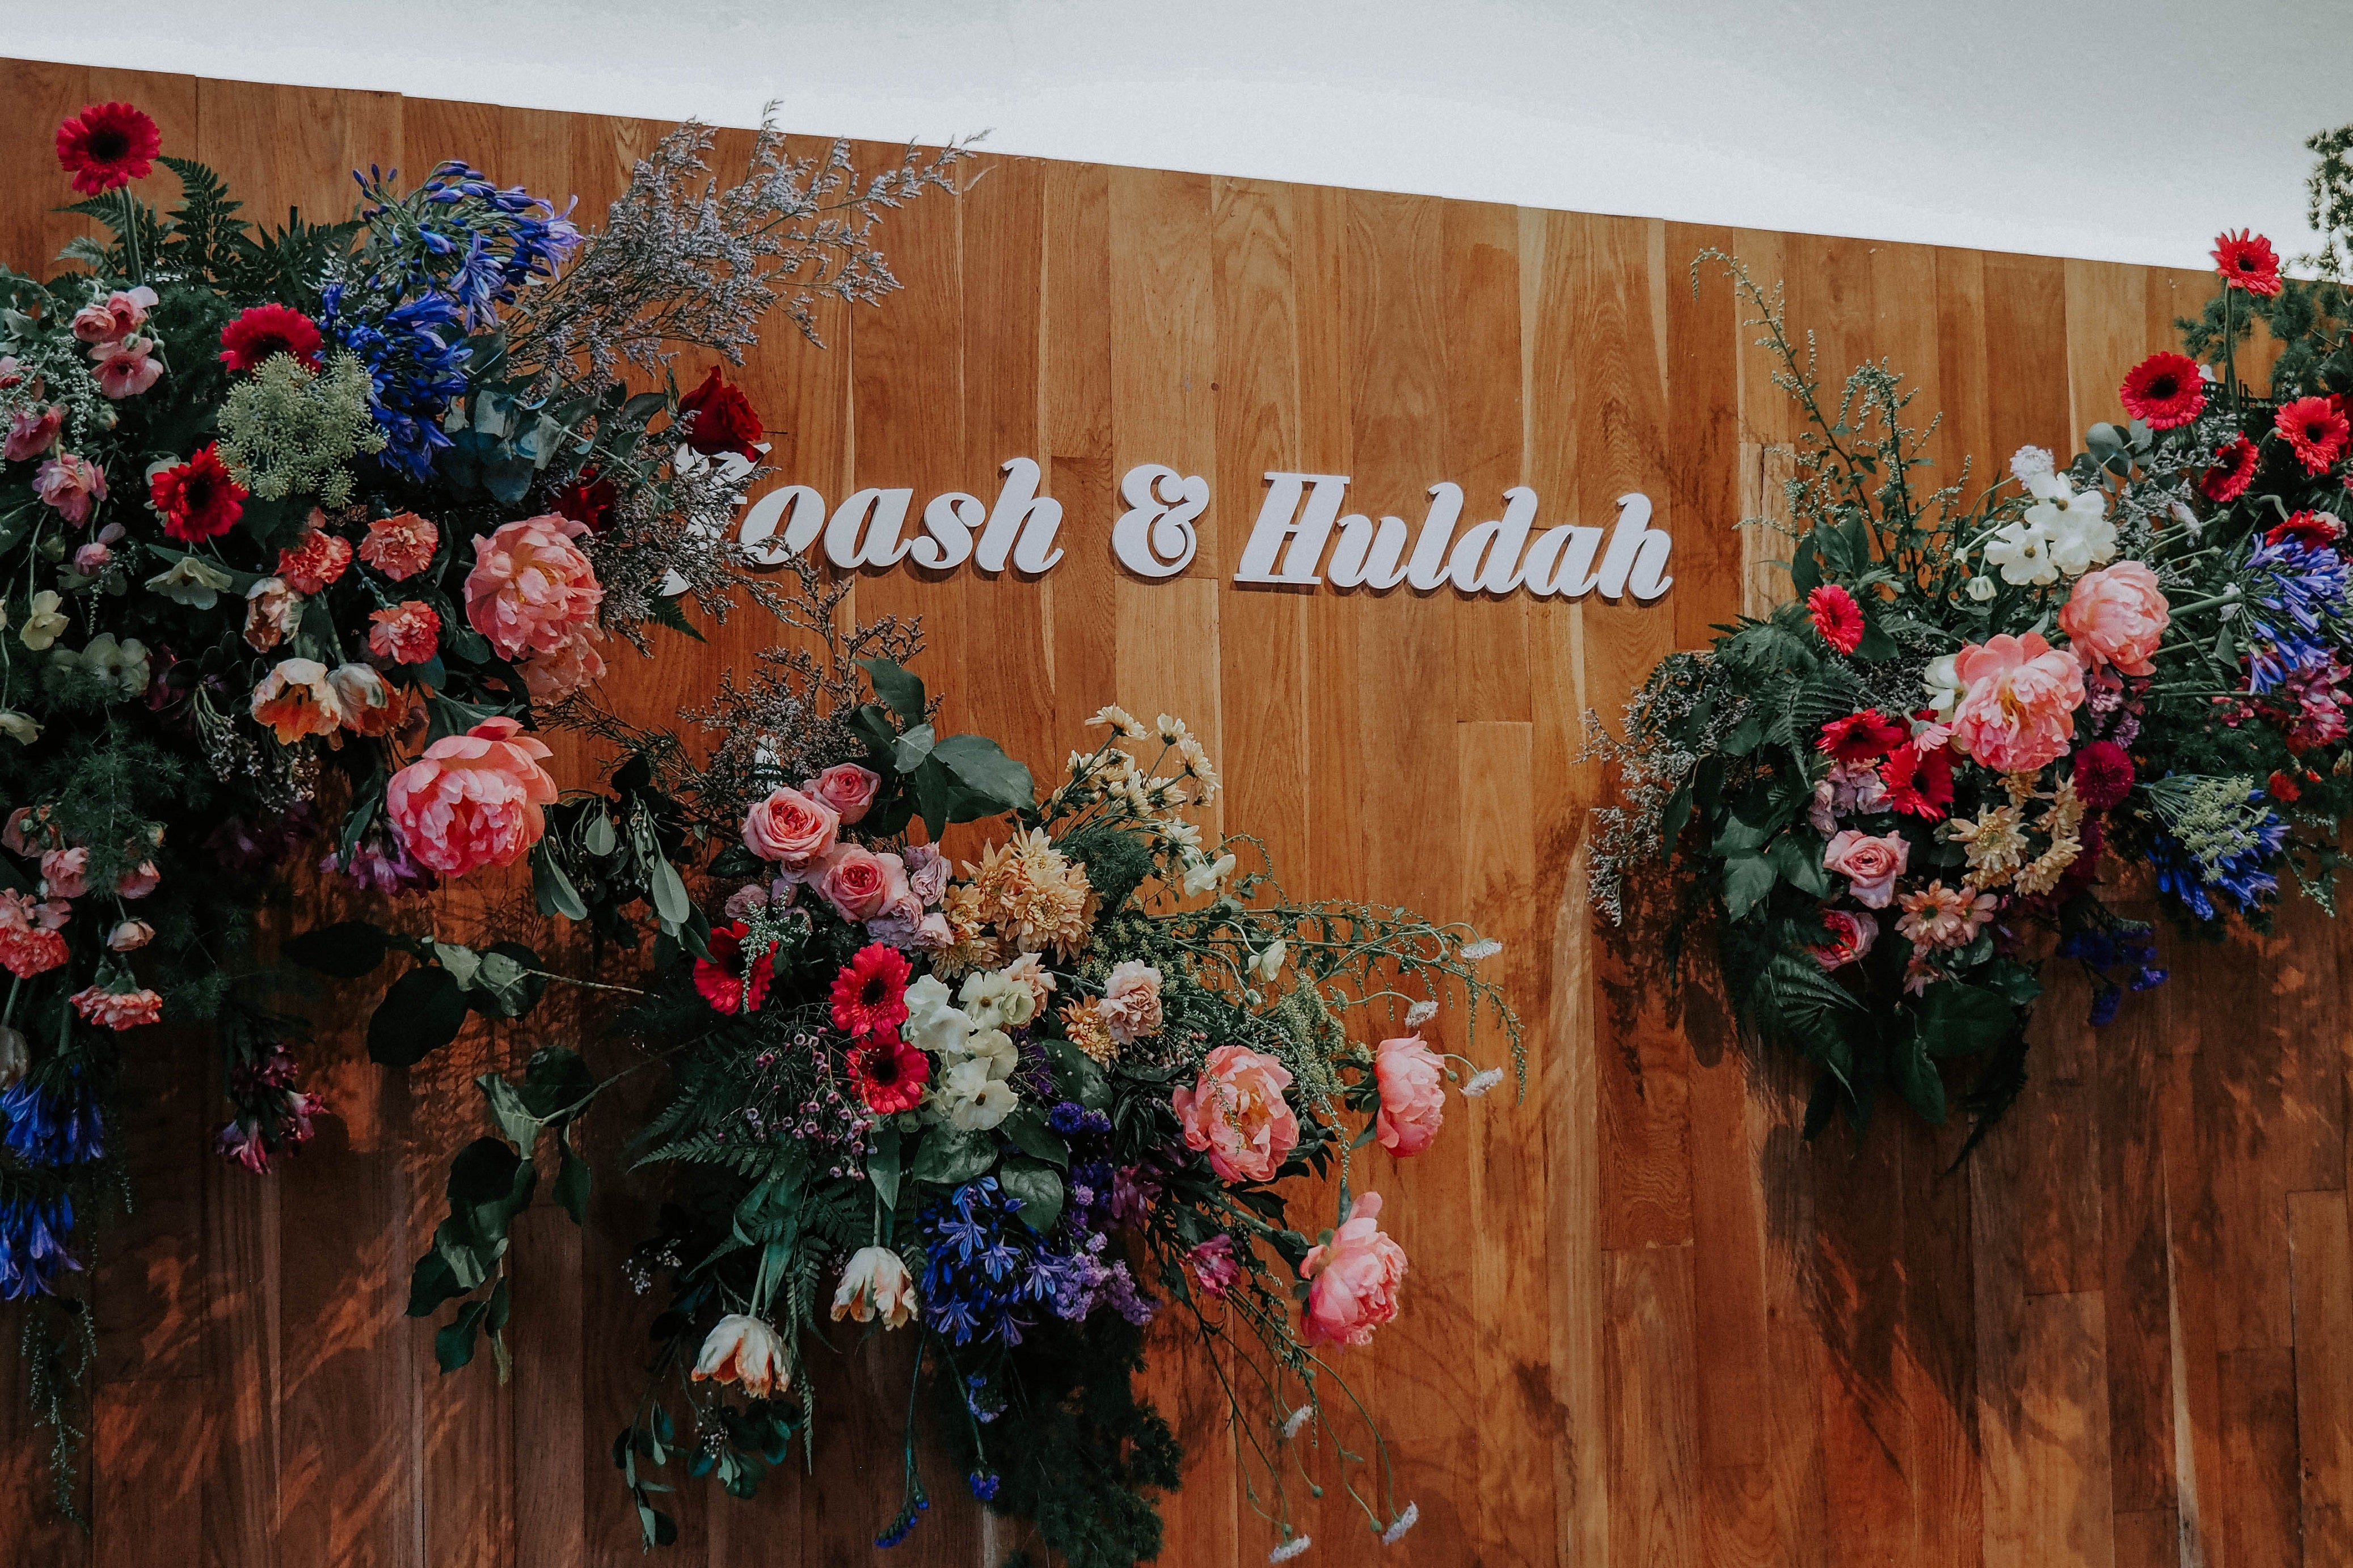 Vintage wooden panels in Singapore wedding venue restaurant at White Rabbit decorated by garden and still life painting inspired blooms